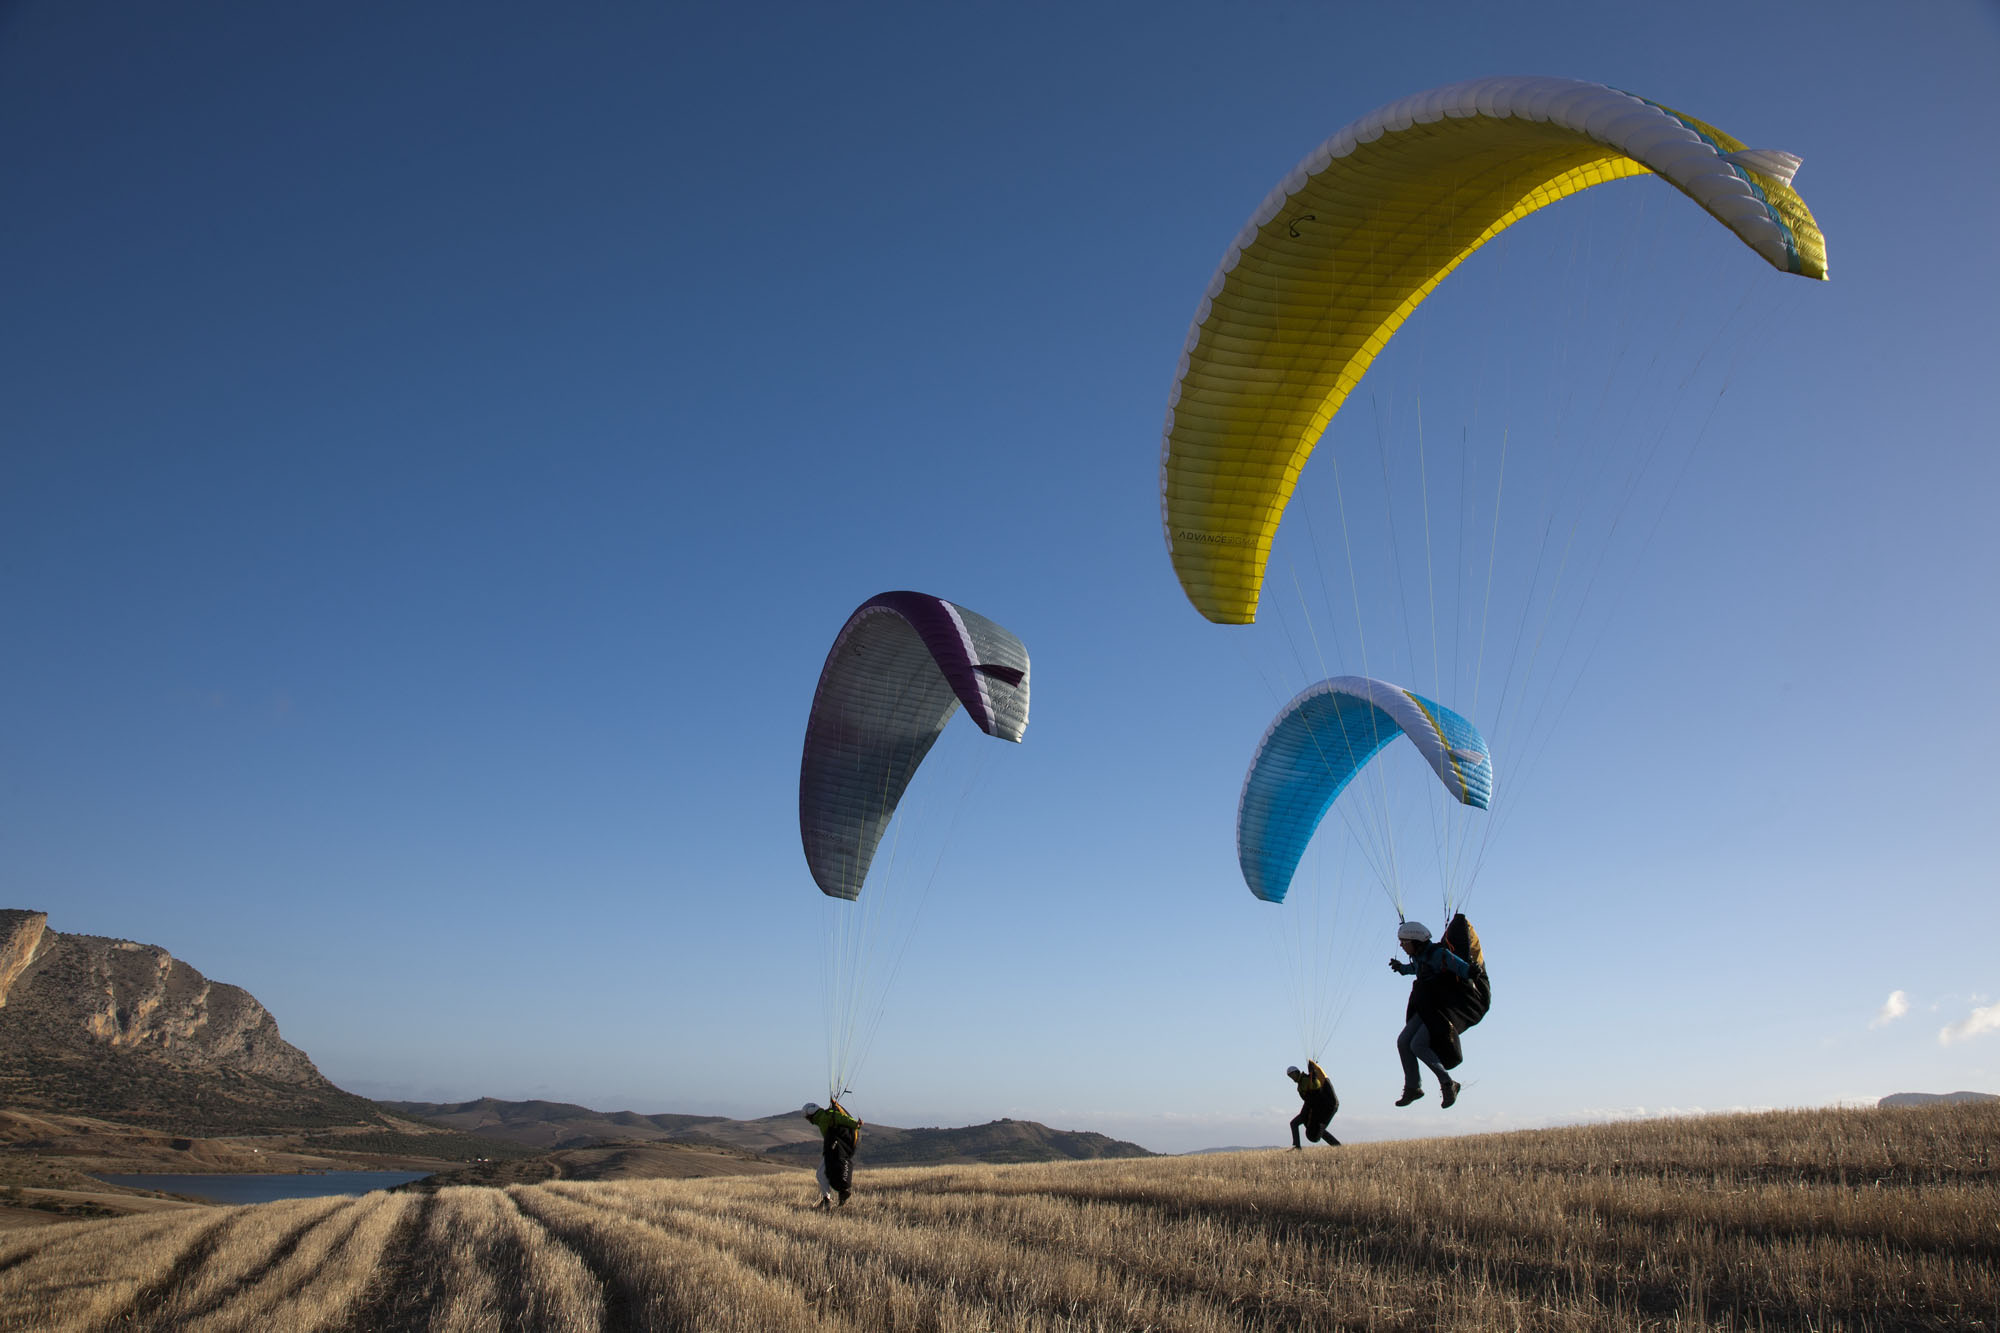 PG3 Course - Infinity Paragliding 2